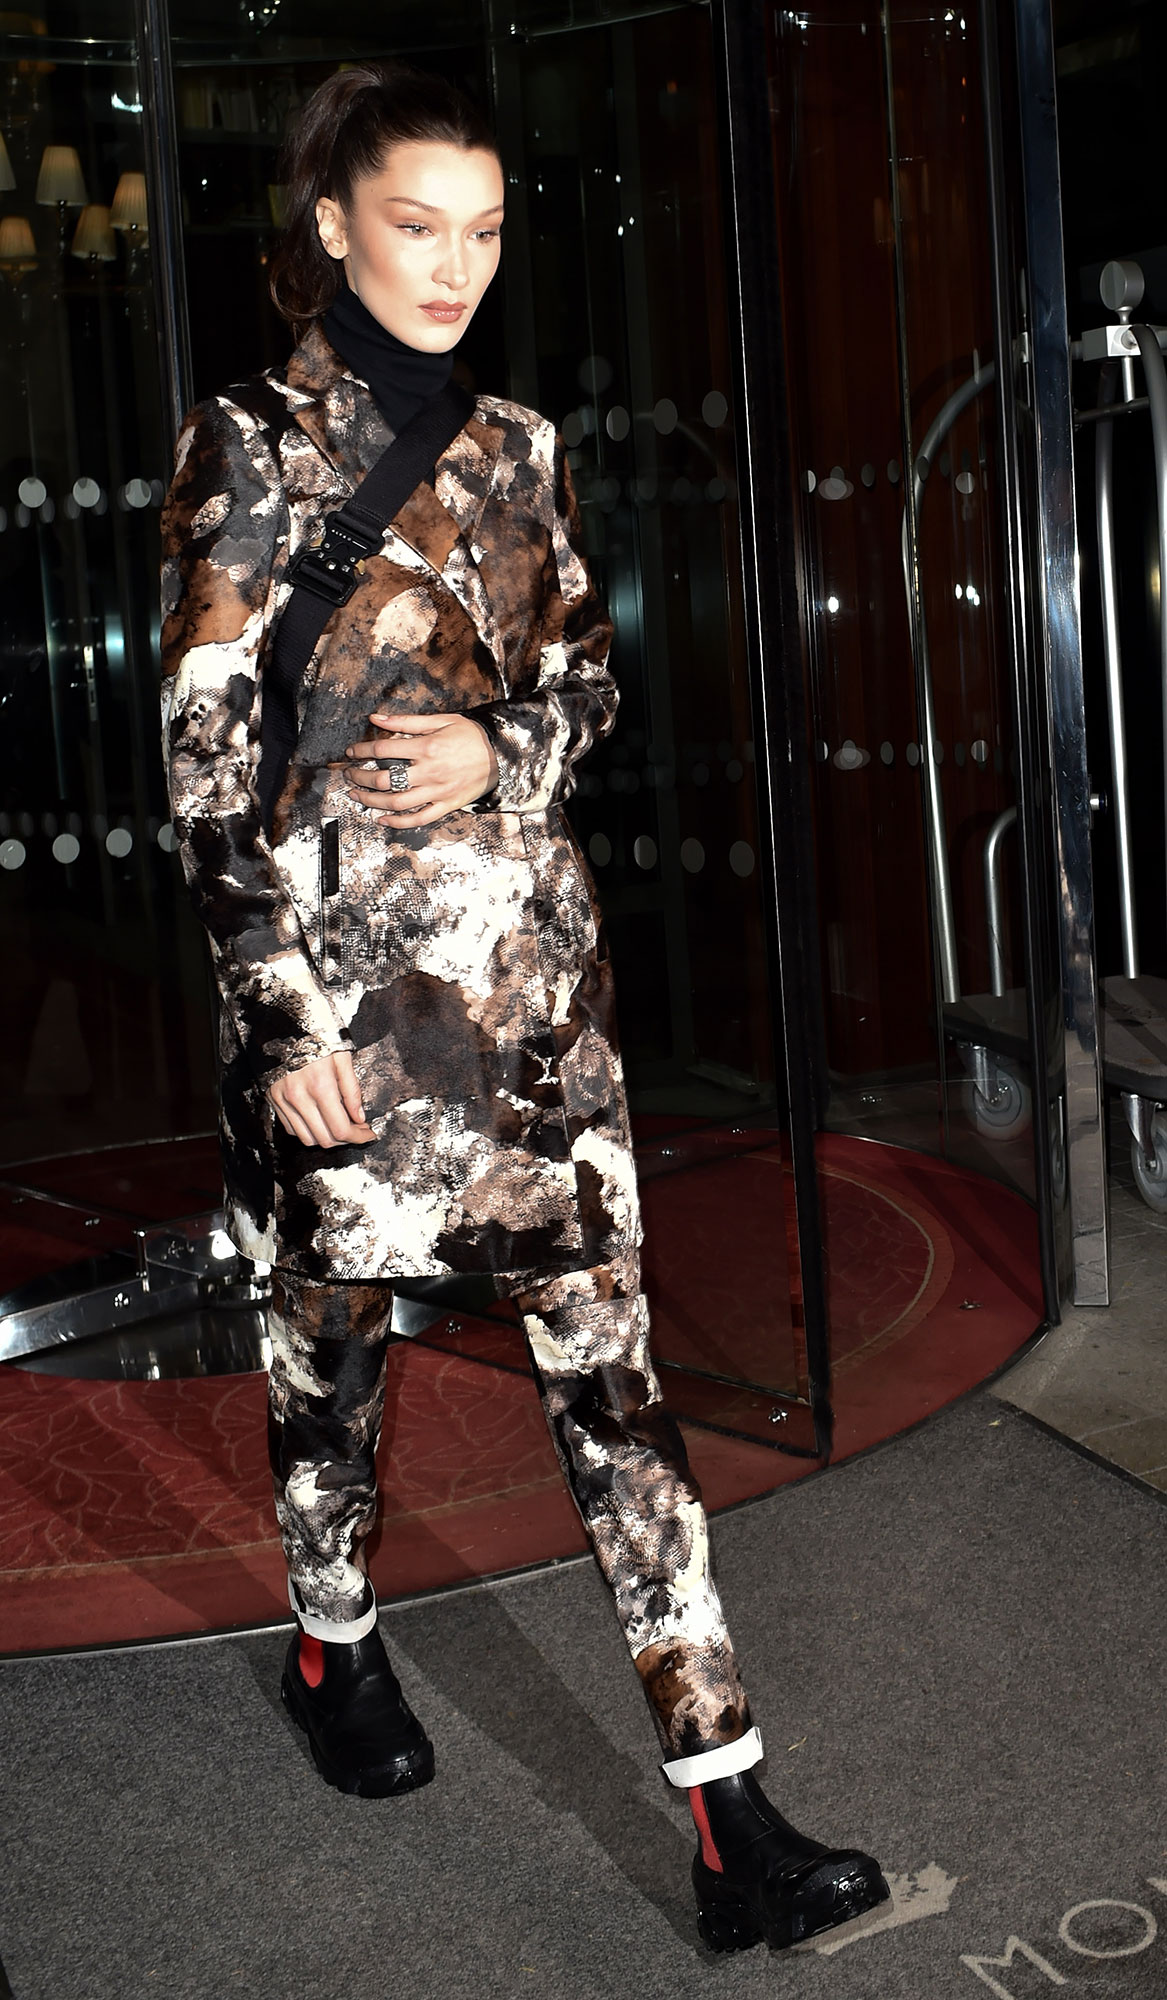 Bella Hadid Stars Continue to Wow on Day 9 of Paris Fashion Week - The brunette beauty rocked an urban camouflage look in her monochrome two-piece on Monday, March 4.